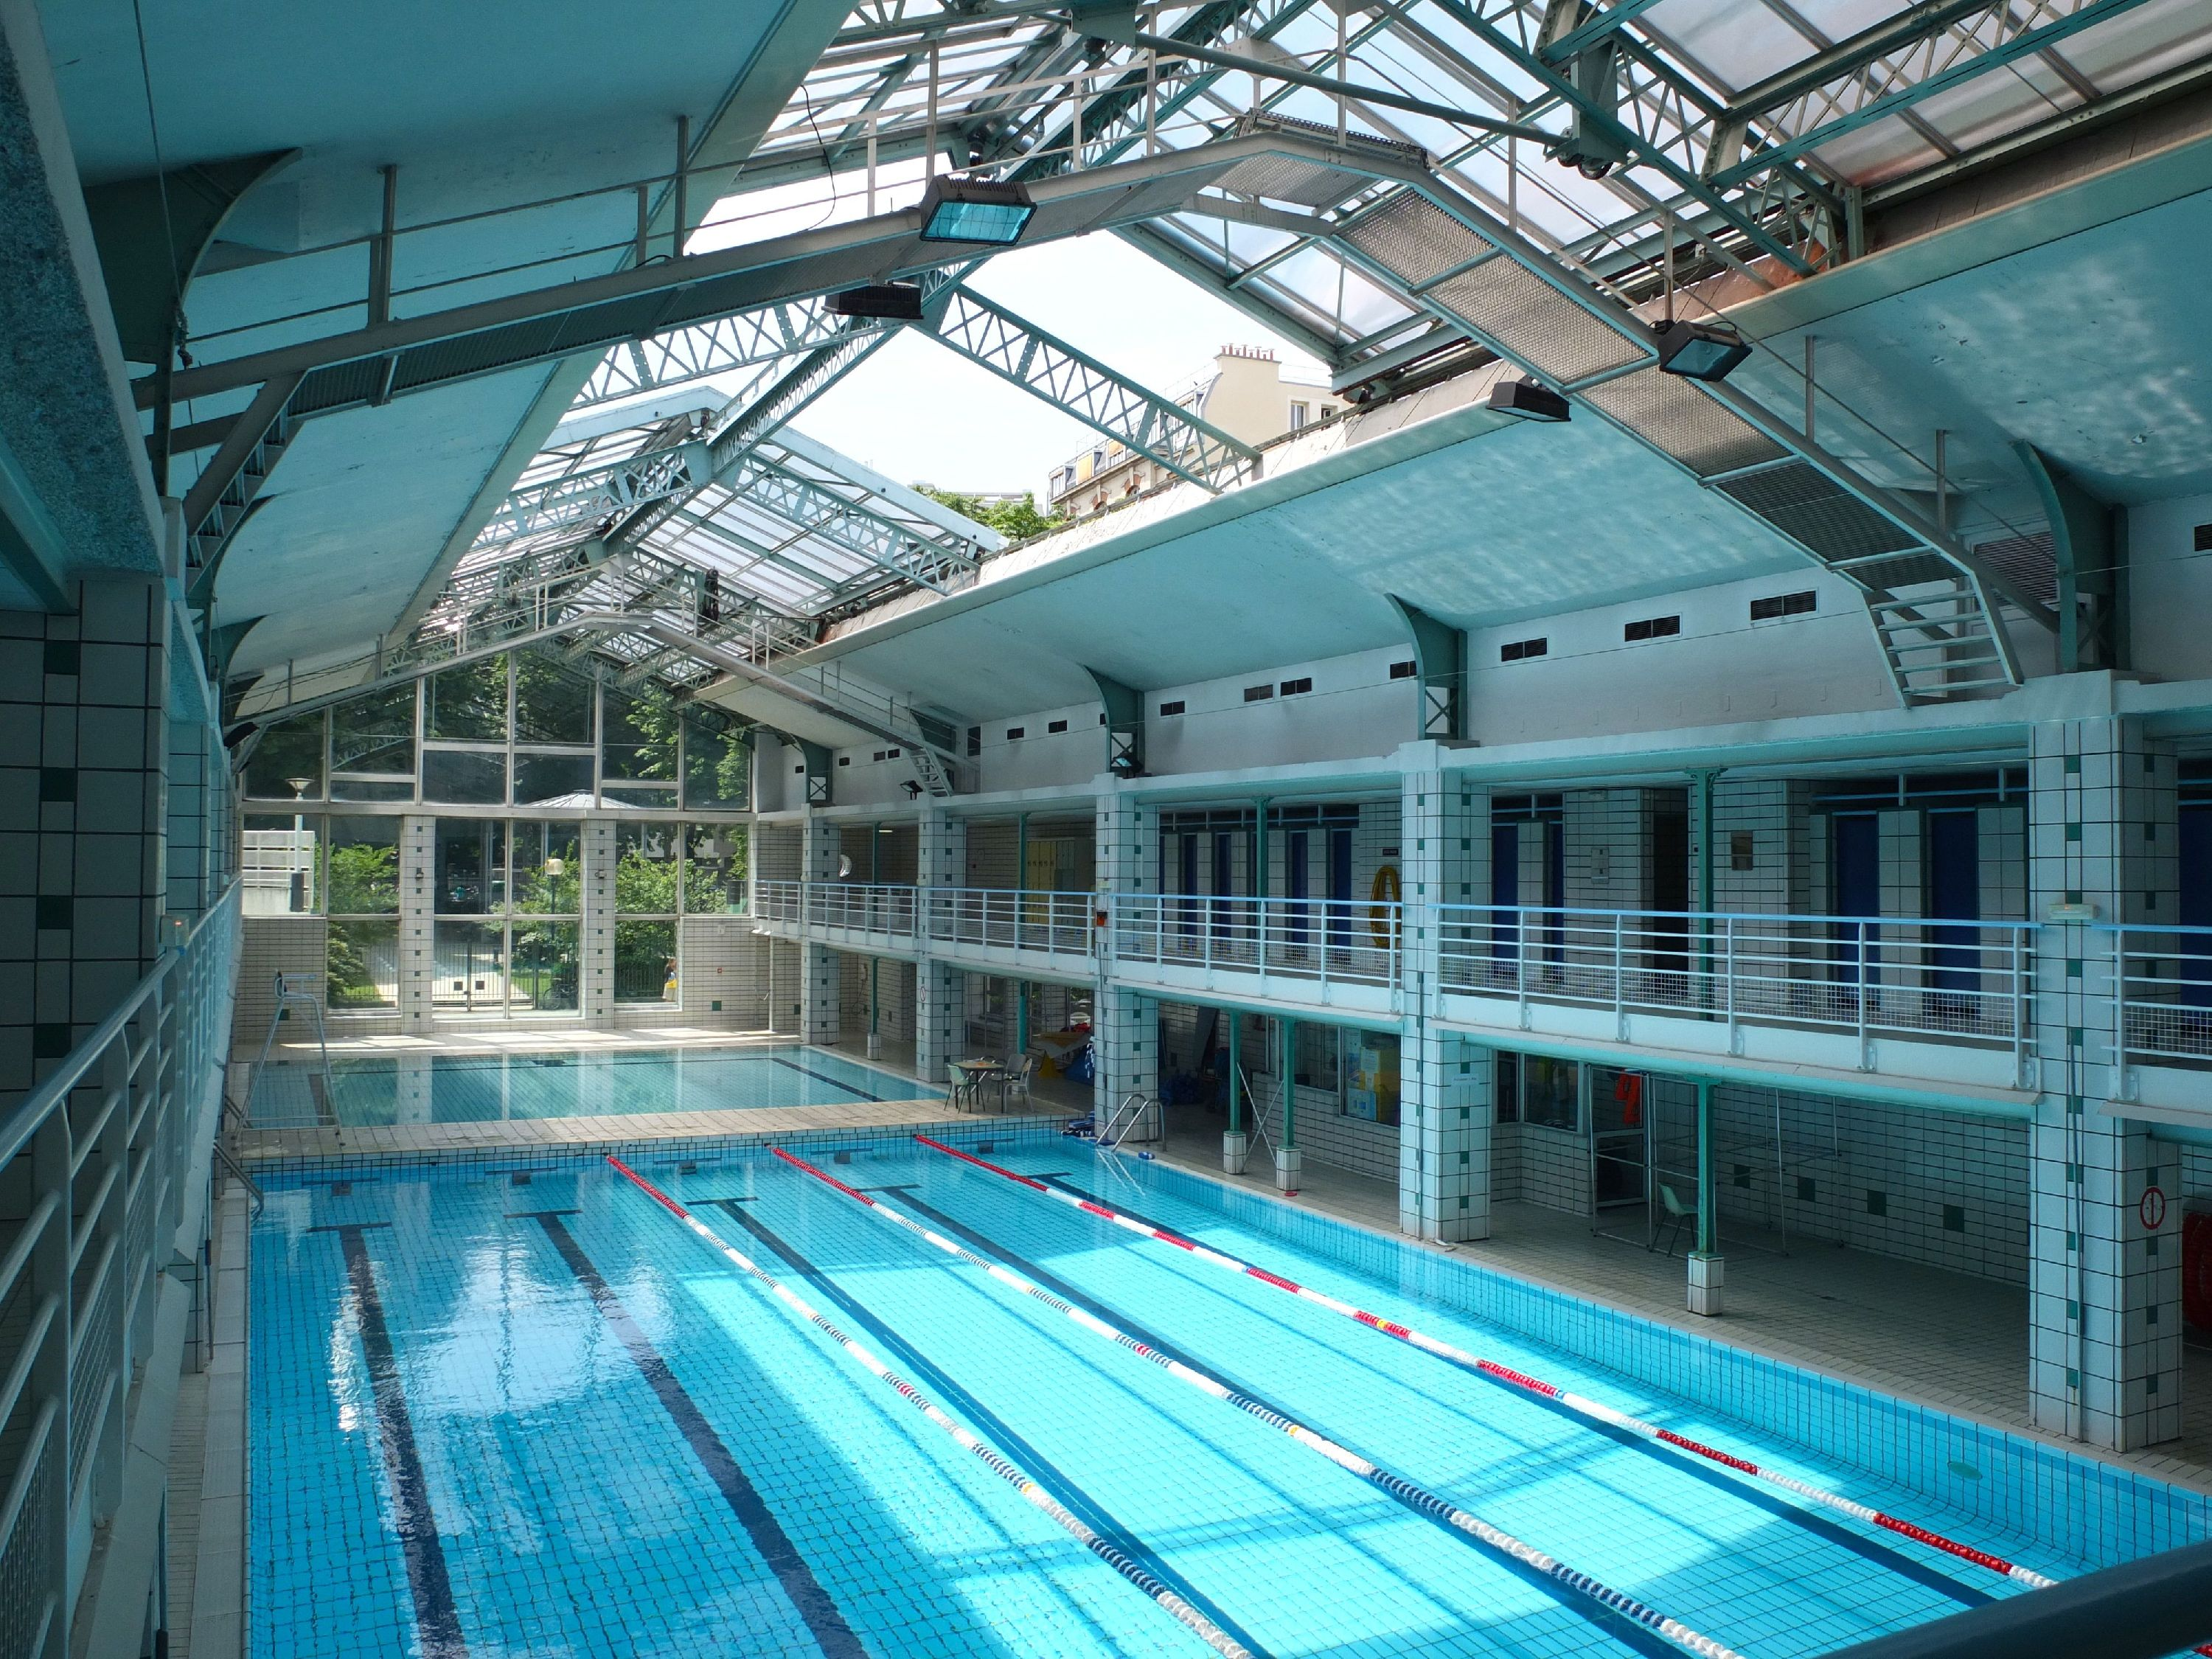 Piscine h bert sport la chapelle paris for Piscine judaique